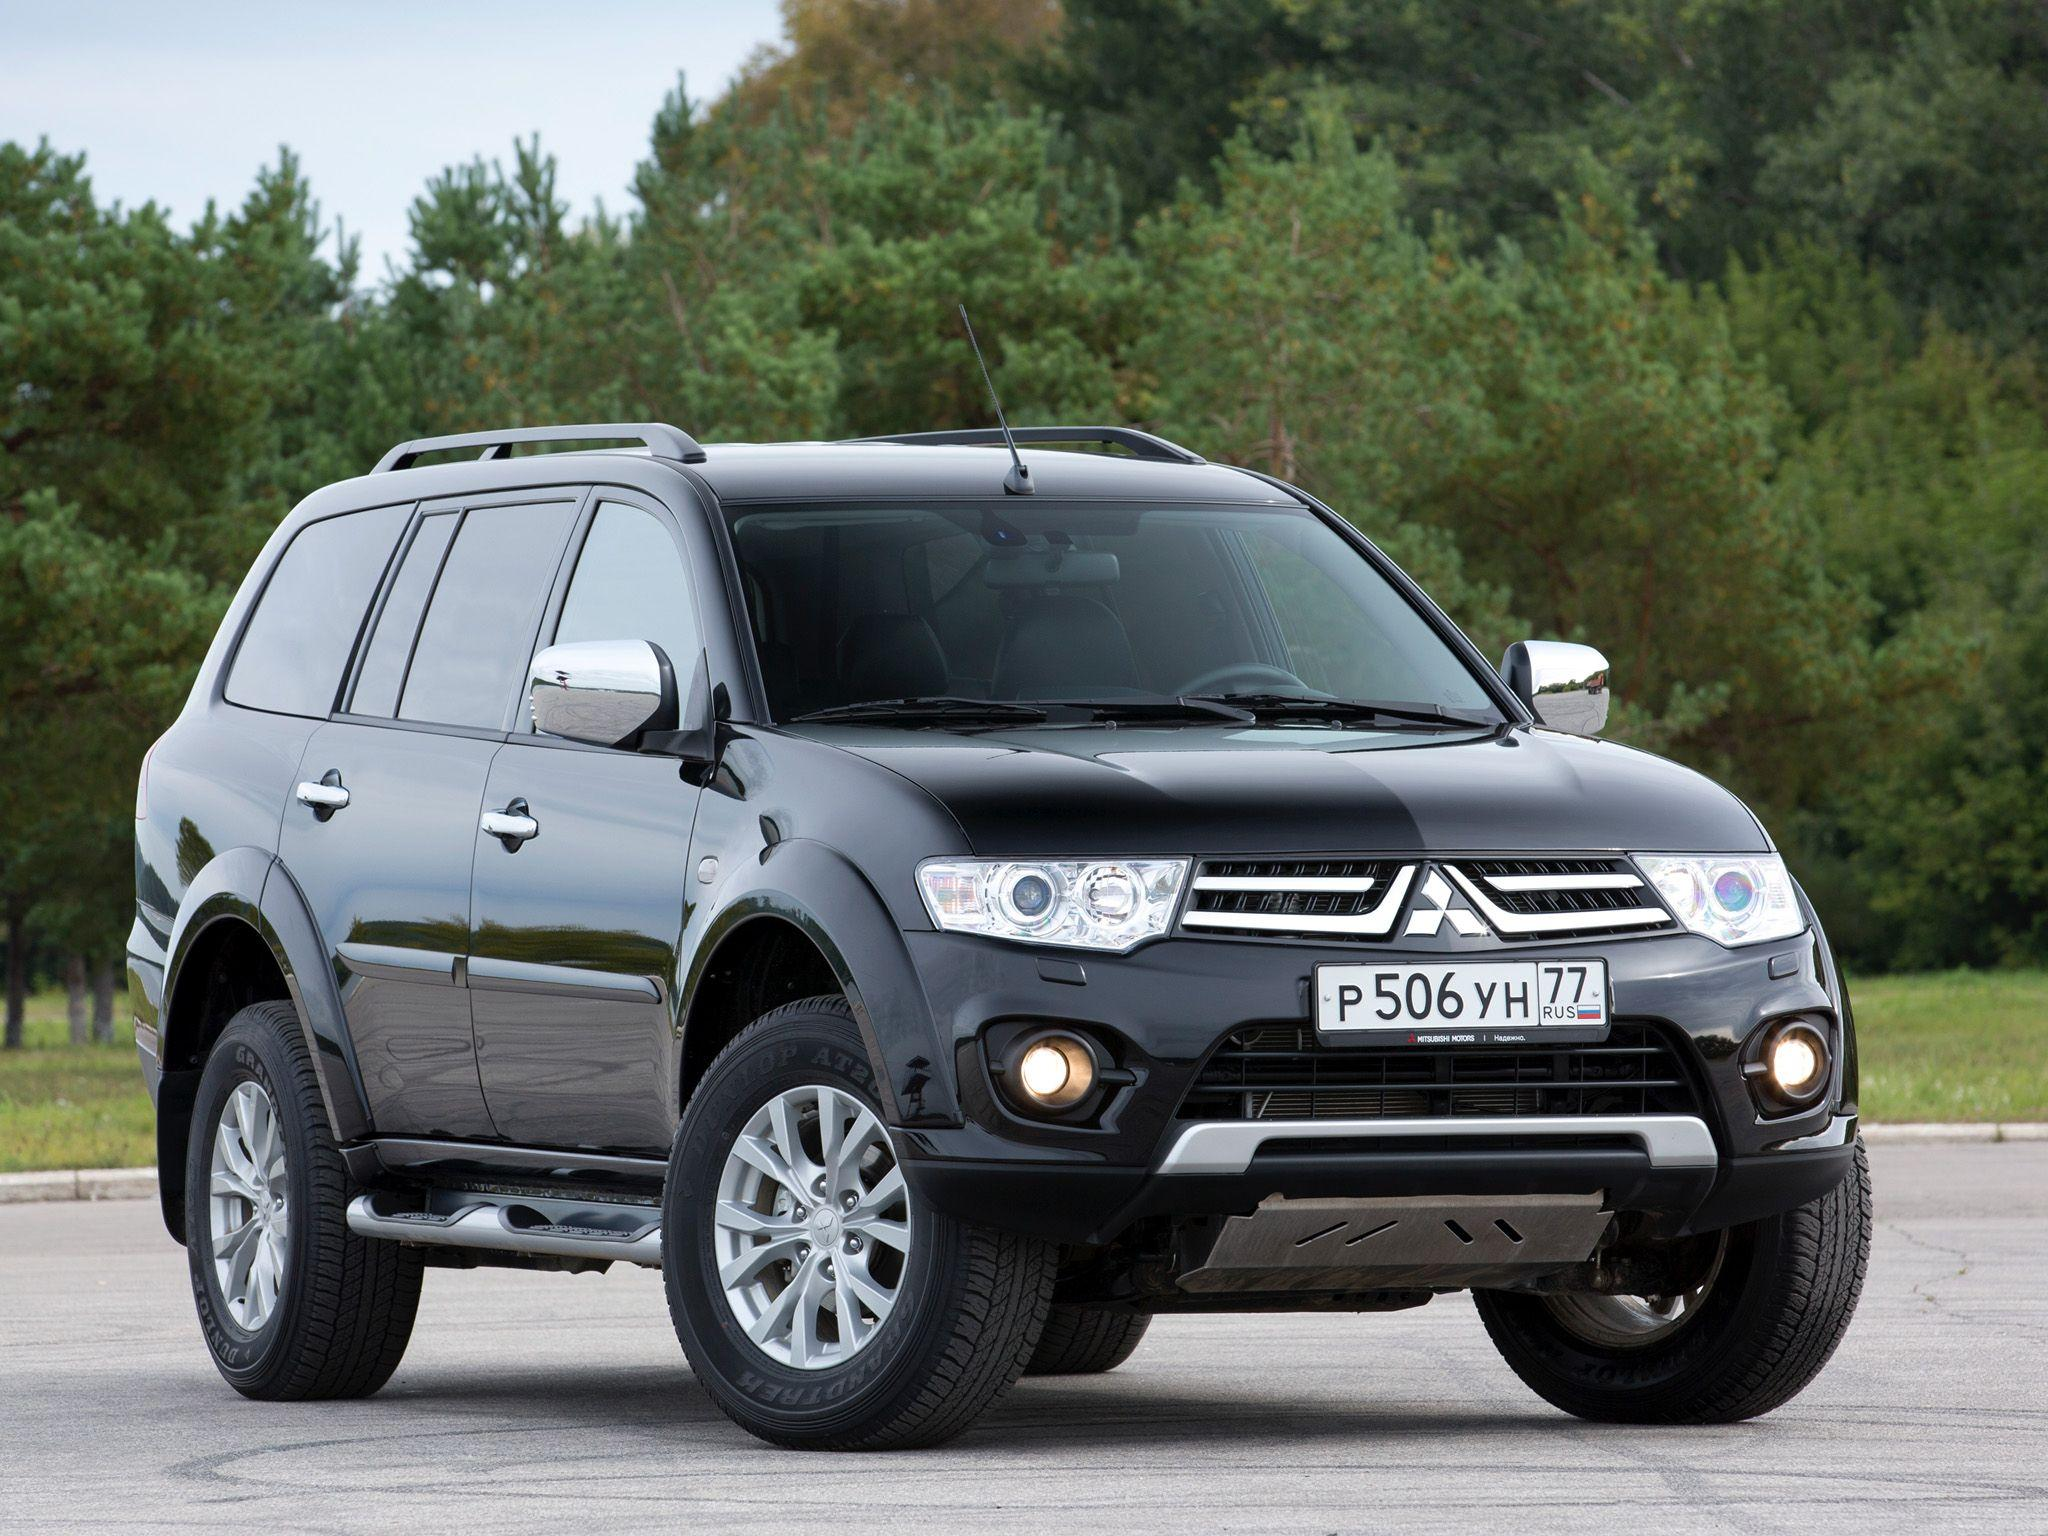 Mitsubishi Pajero Sport Photos and Wallpapers | TrueAutoSite